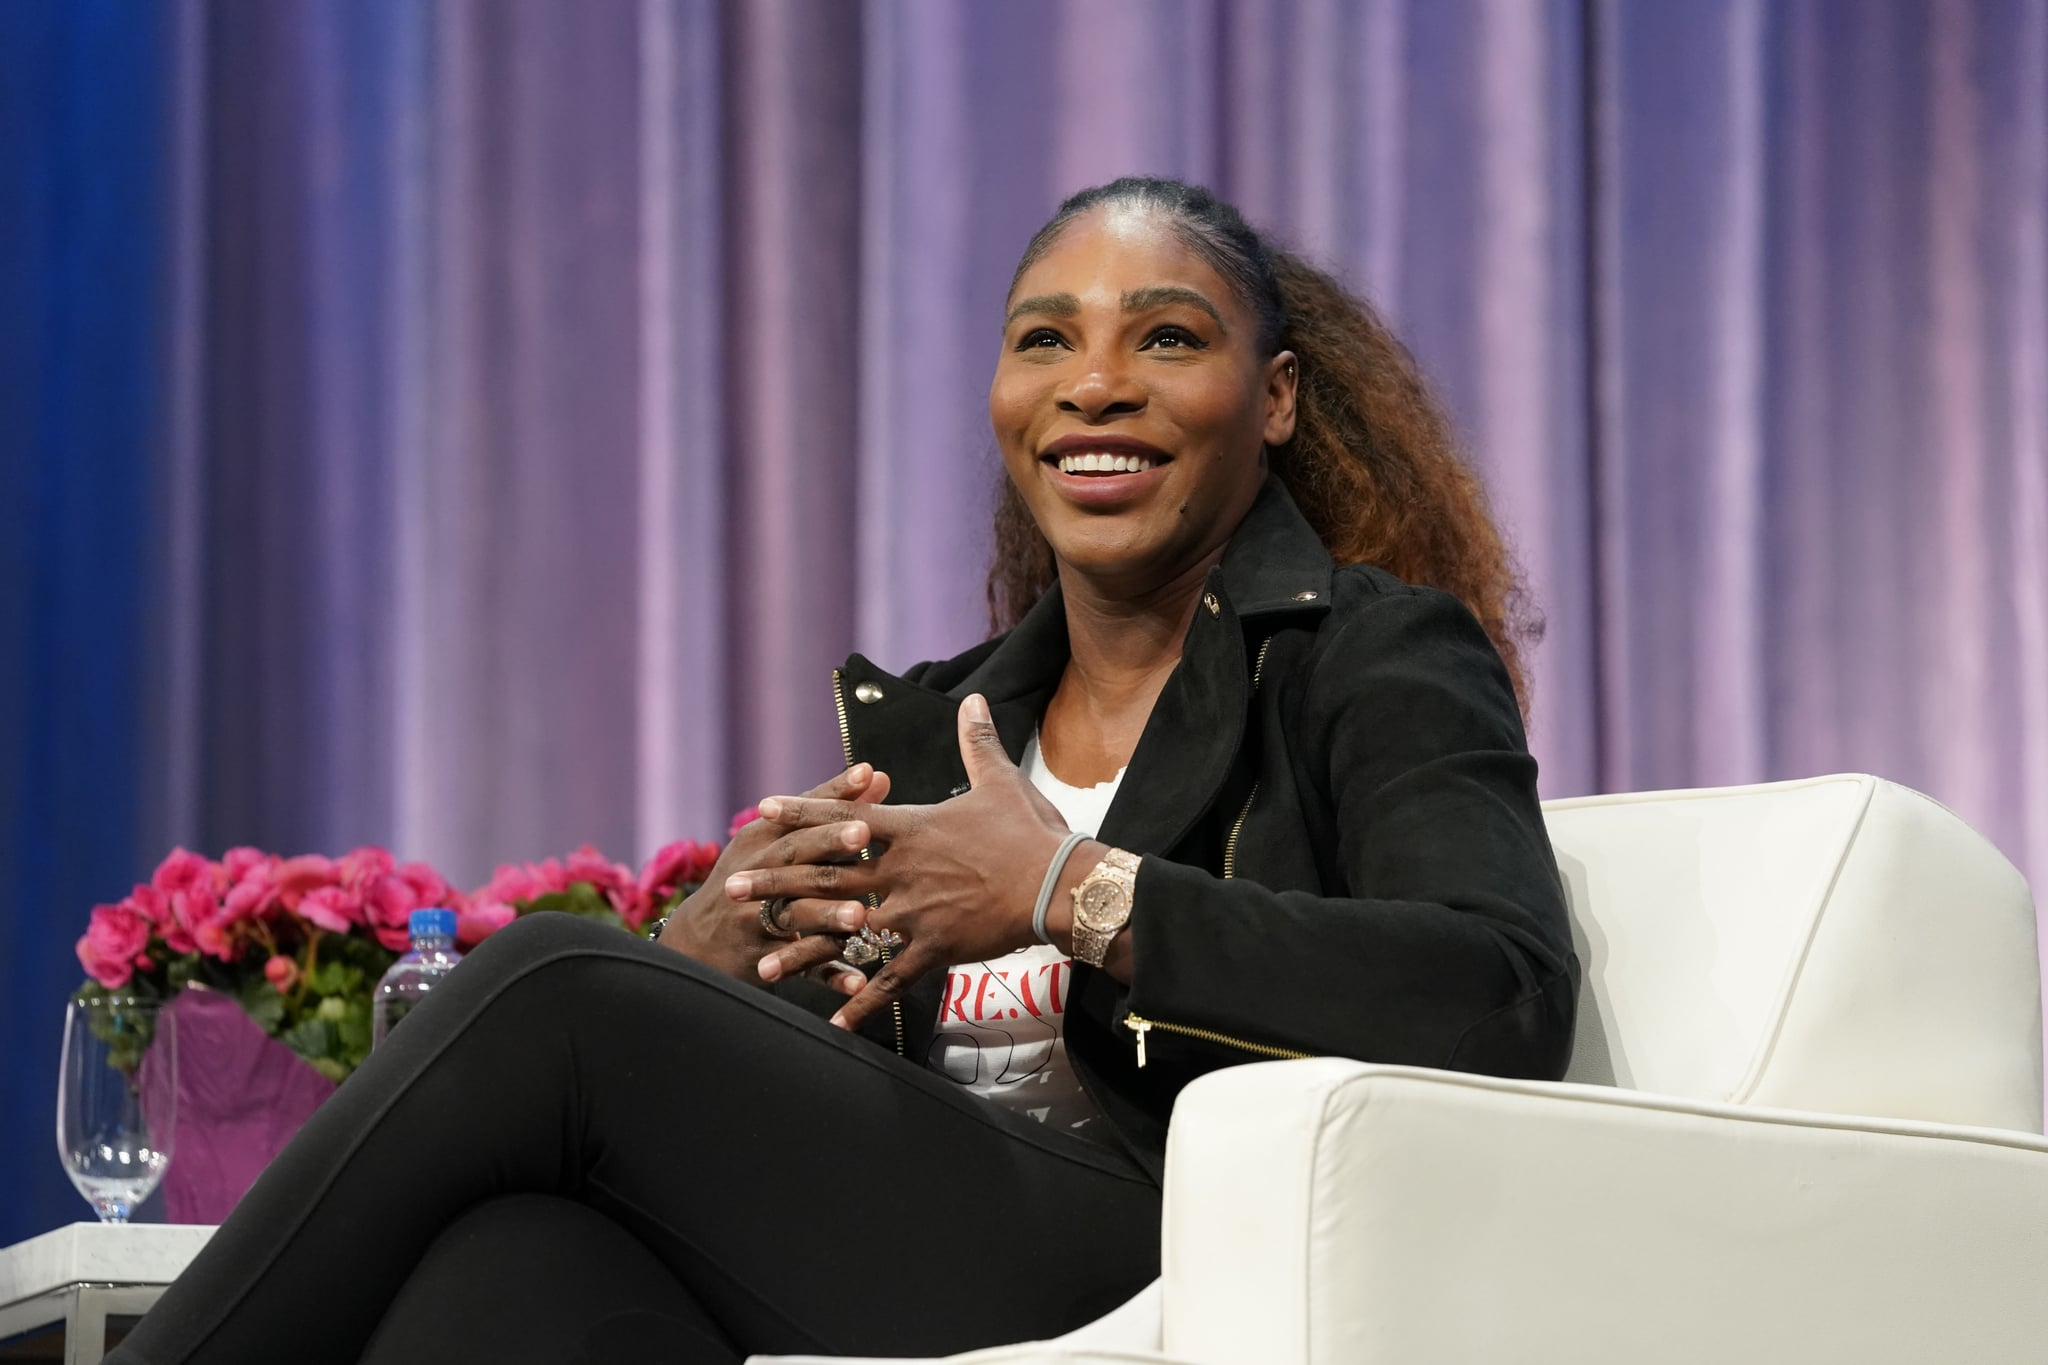 SAN JOSE, CALIFORNIA - FEBRUARY 22: Serena Williamsspeaks on stage during keynote conversation at 2019 Watermark Conference for Women Silicon Valley at San Jose McEnery Convention Center on February 22, 2019 in San Jose, California. (Photo by Marla Aufmuth/WireImage)